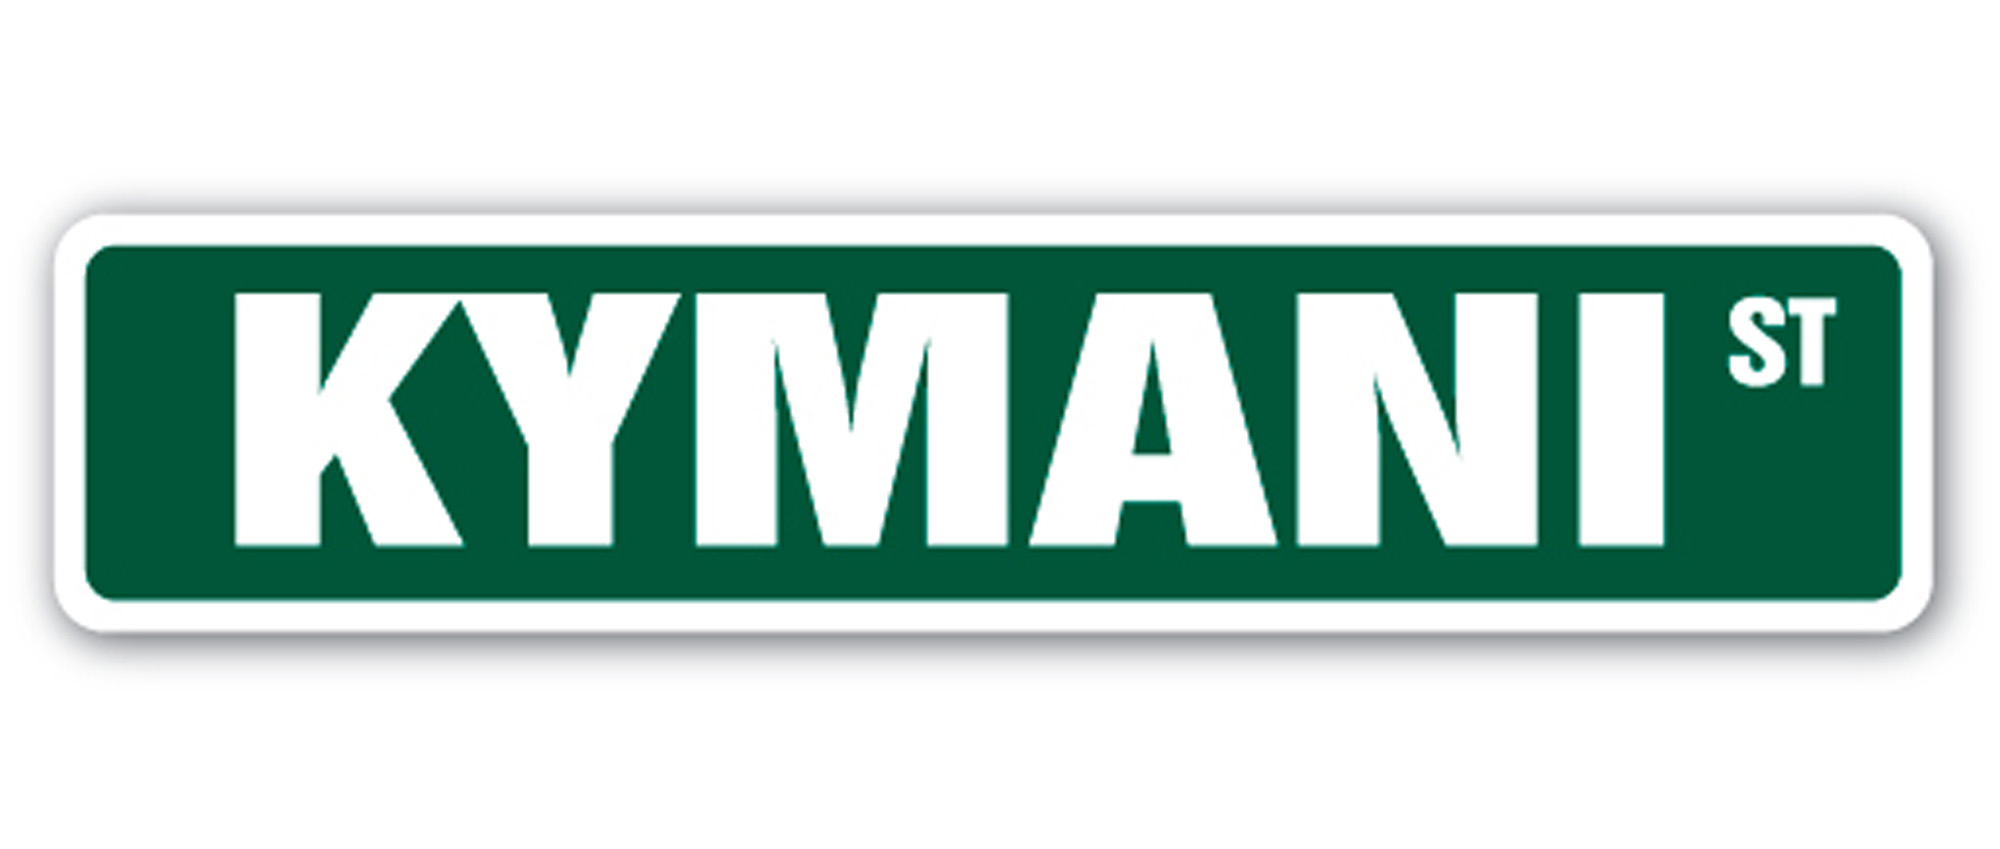 KYMANI Street Sign Childrens Name Room Decal| Indoor ...